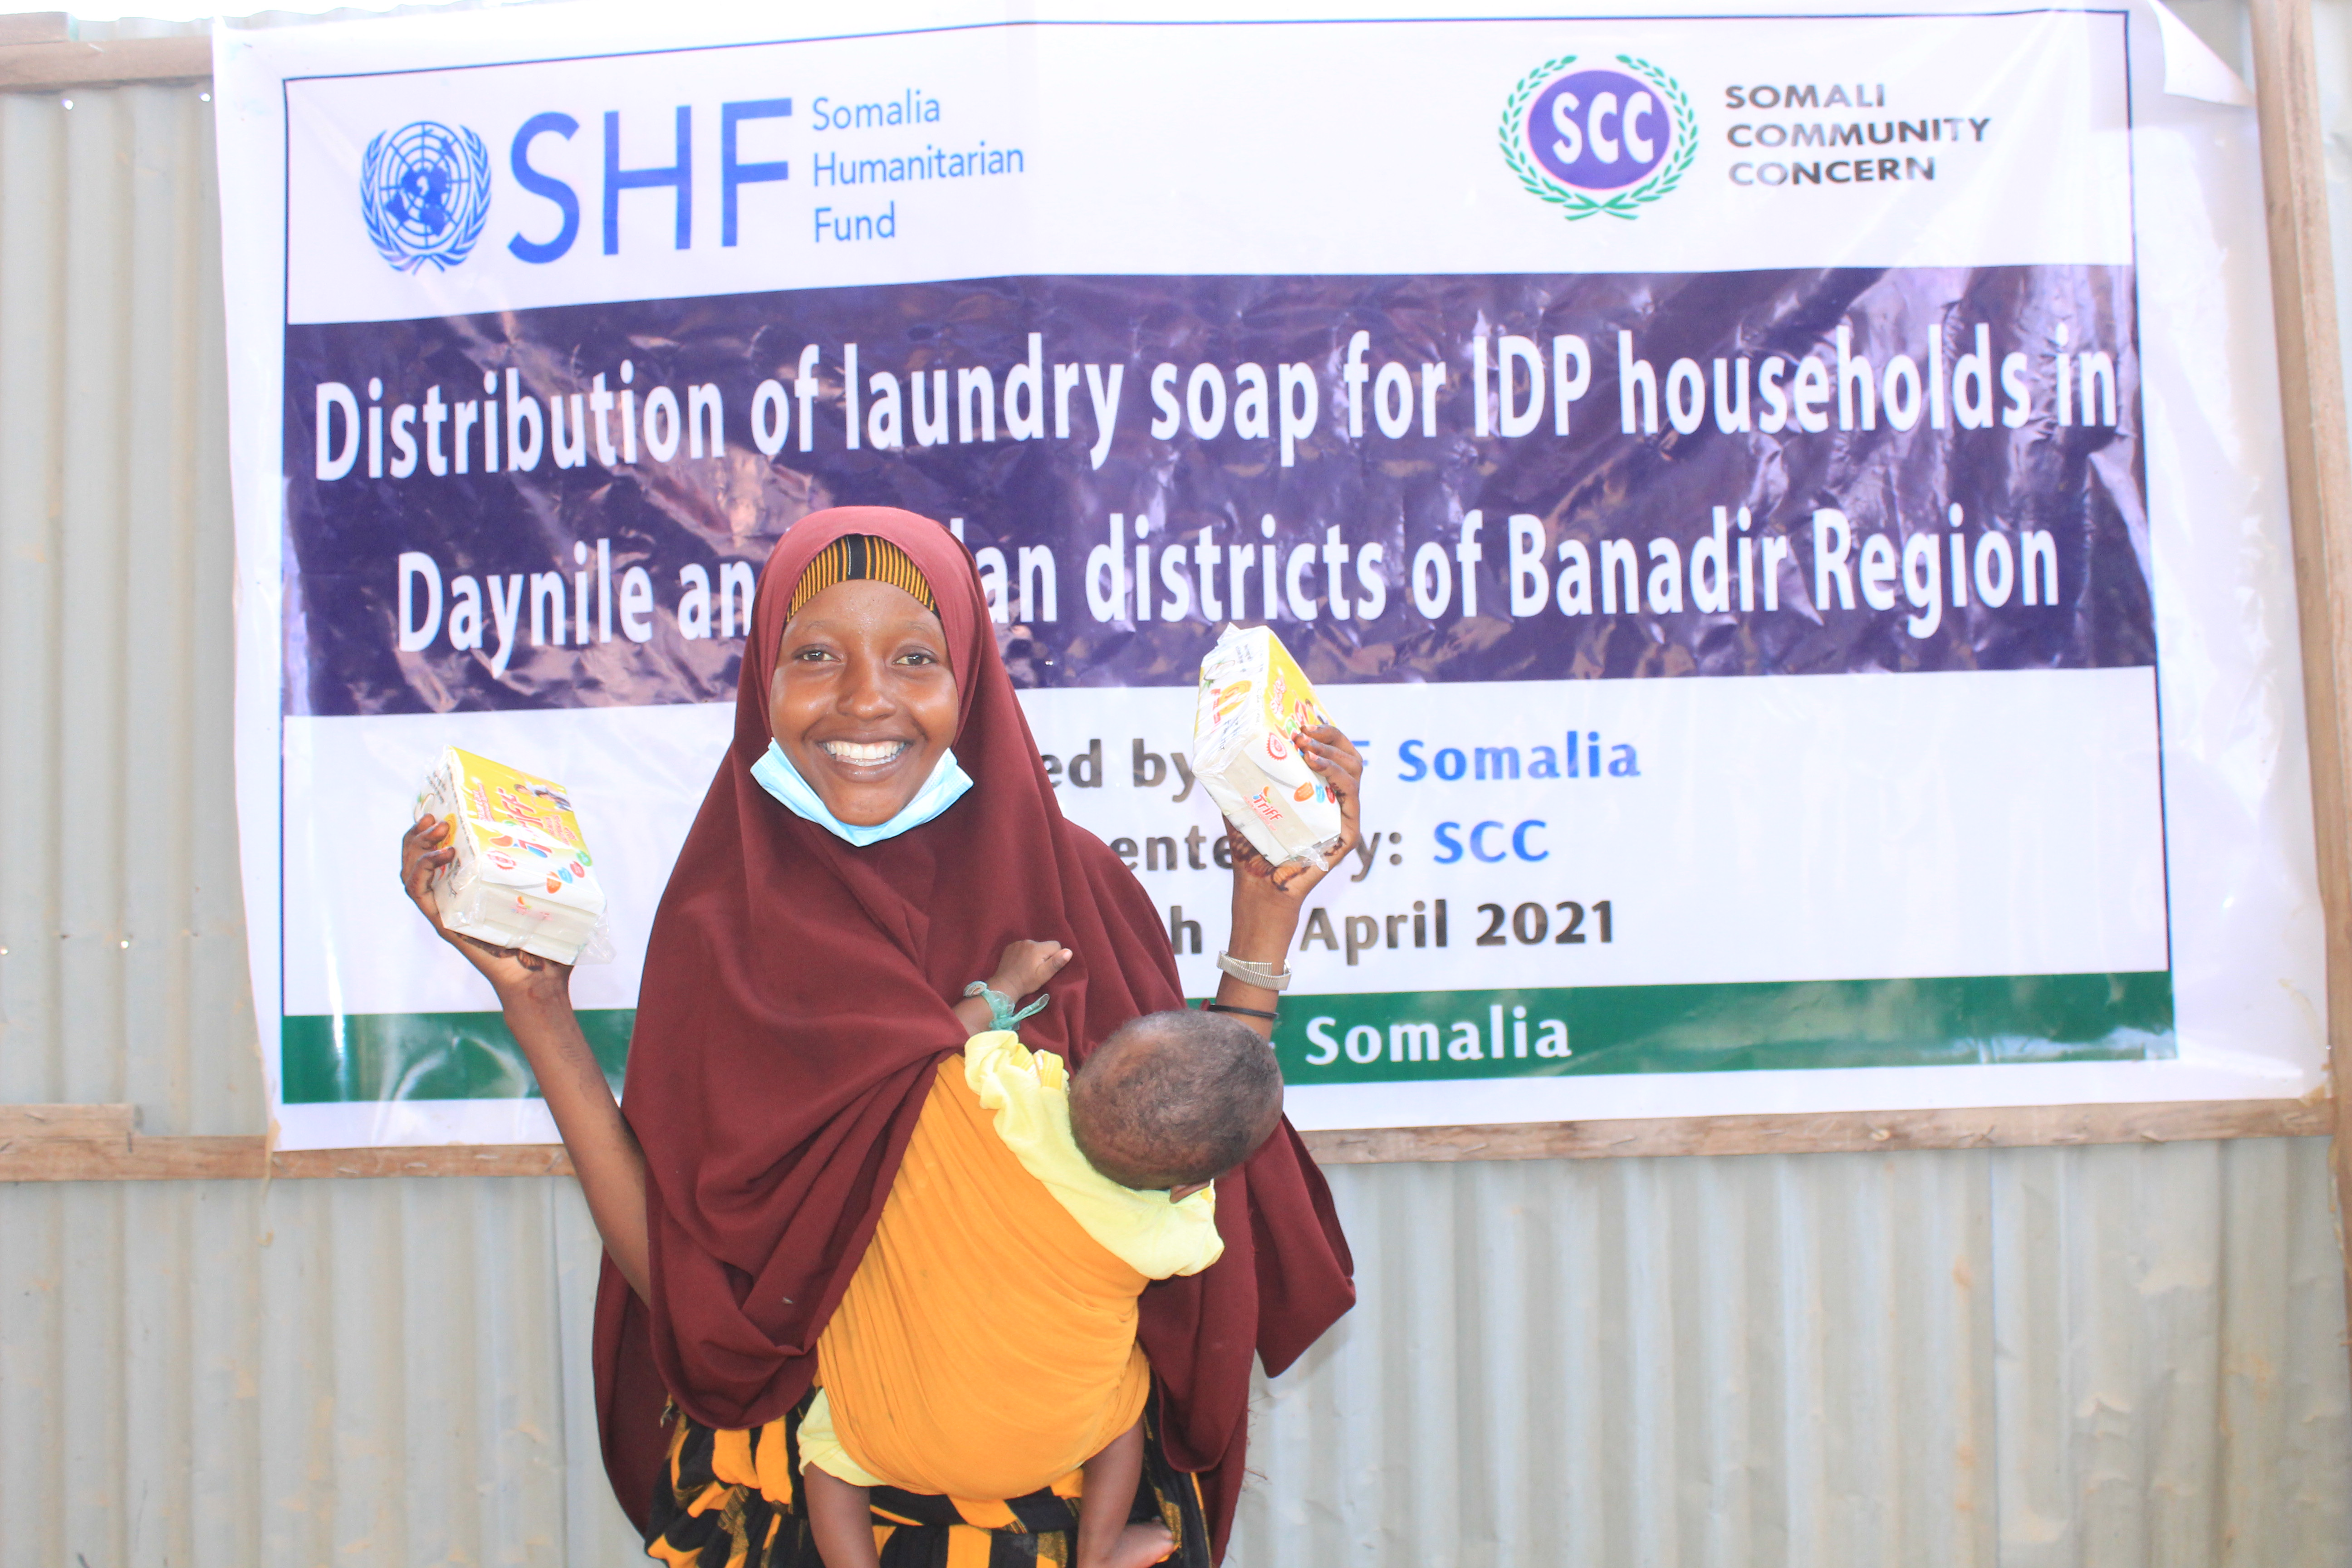 Distribution of laundry soap